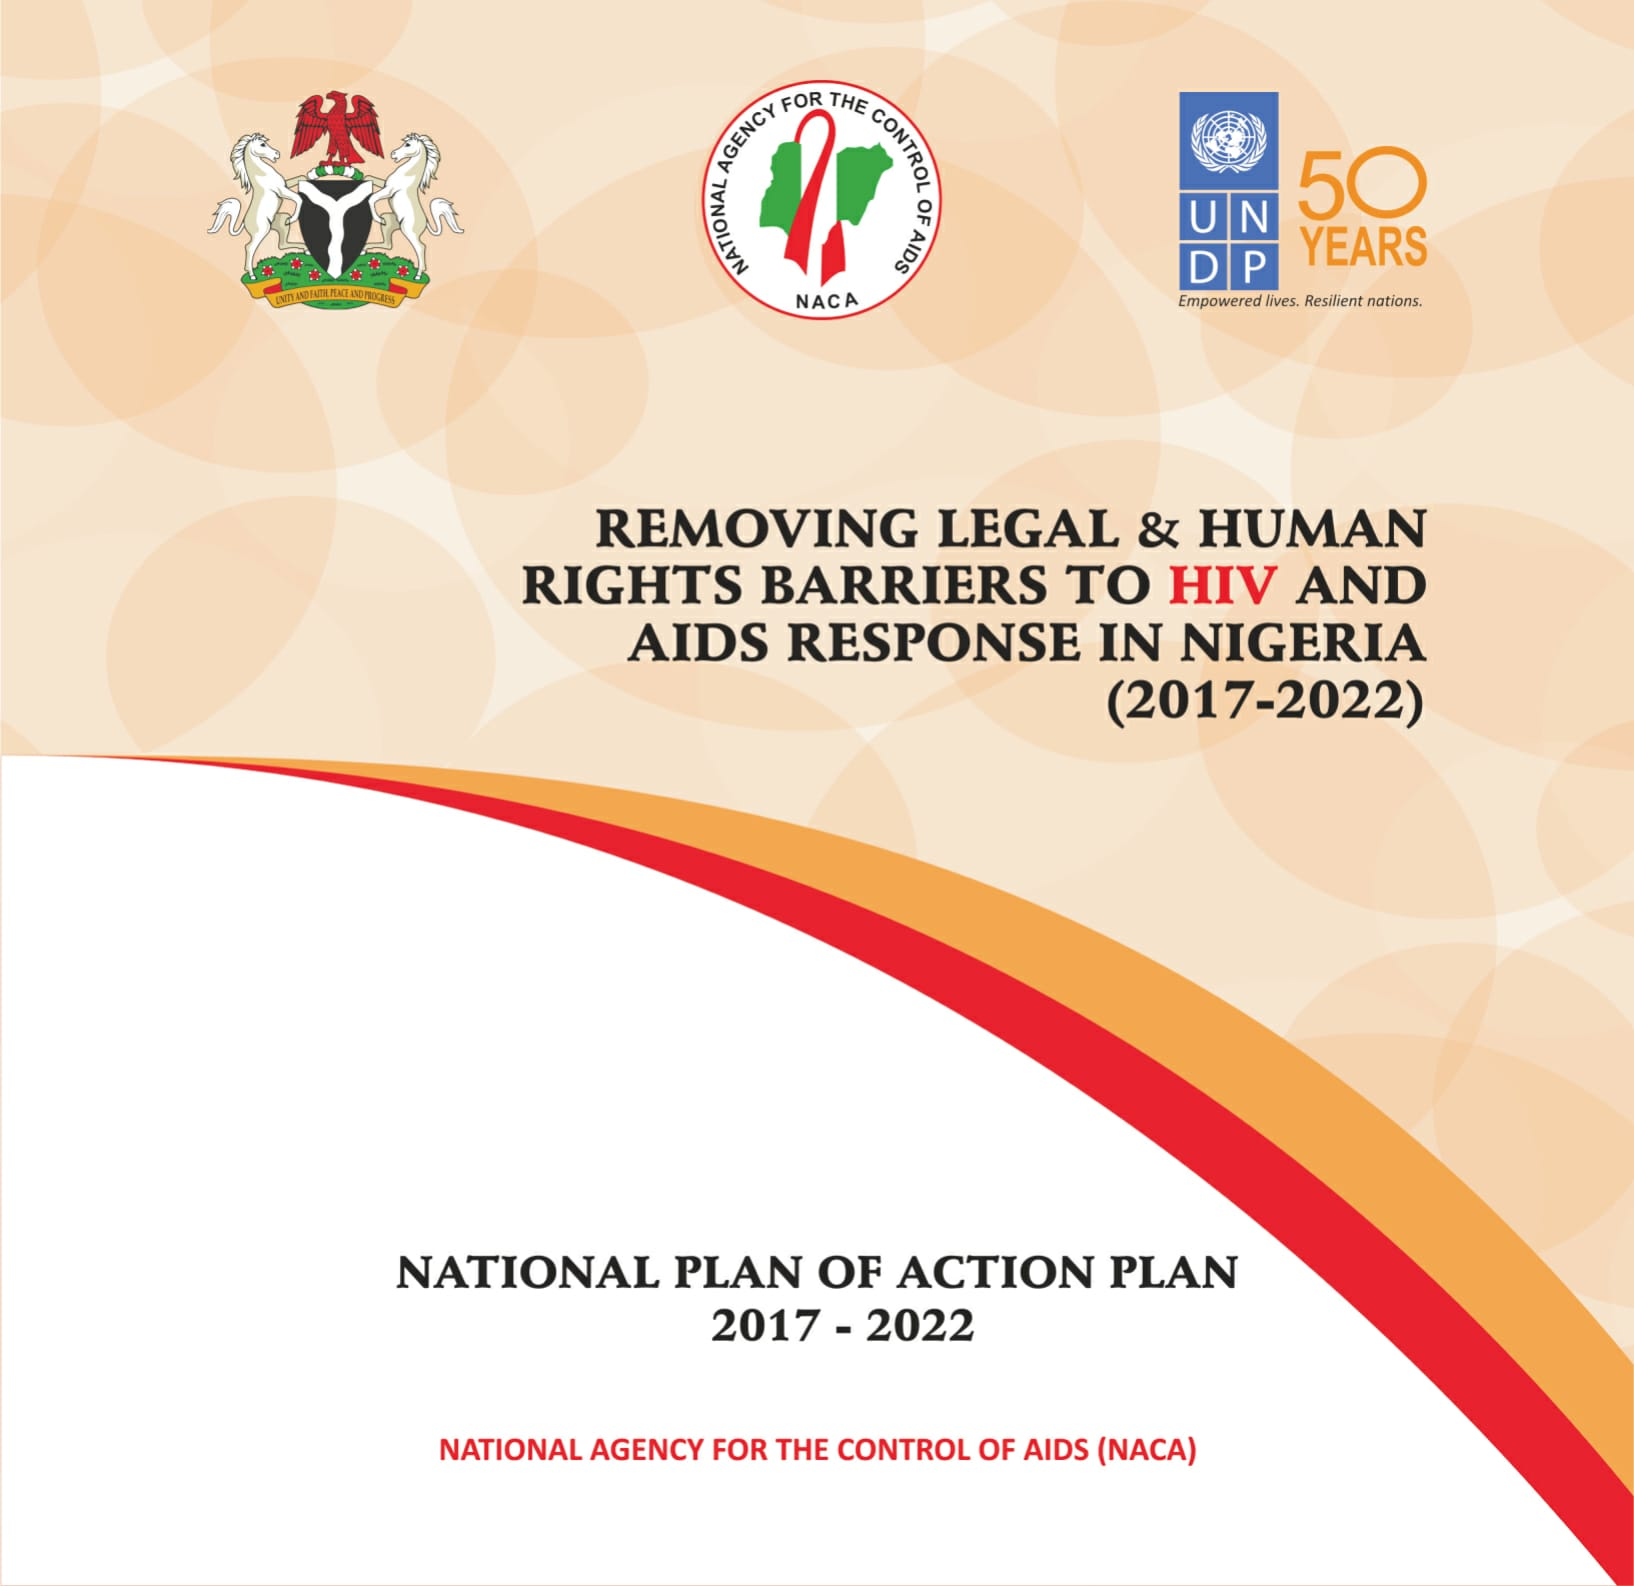 Removing legal and human rights barriers to HIV and AIDS response in Nigeria - National Plan of Action 2017-2022